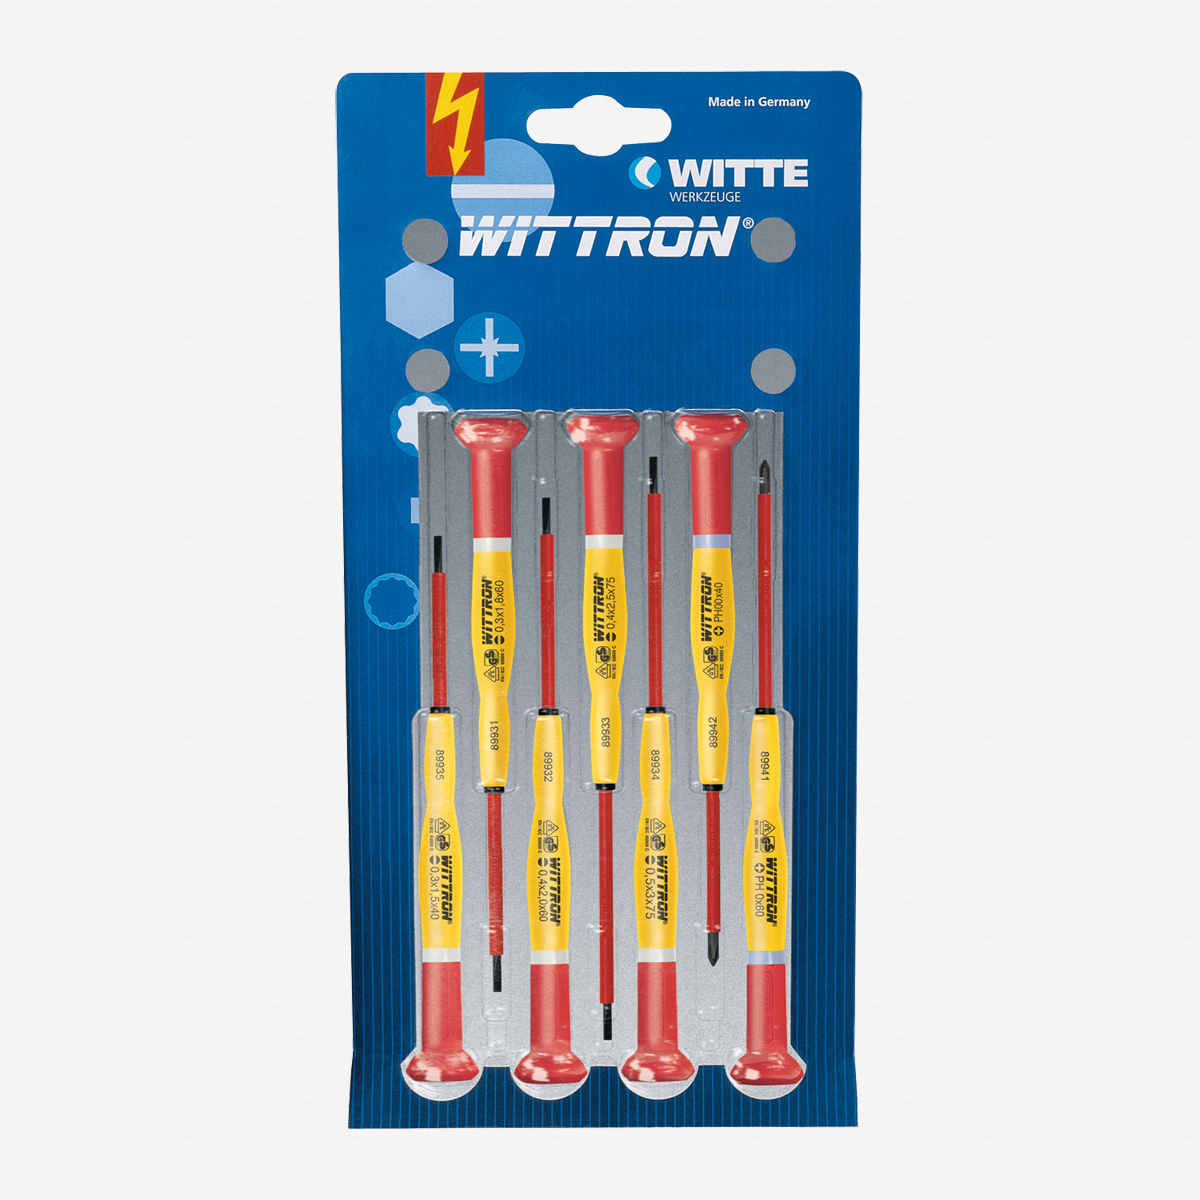 Witte 89377 7 Piece Wittron Insulated Slotted and Phillips Set - KC Tool